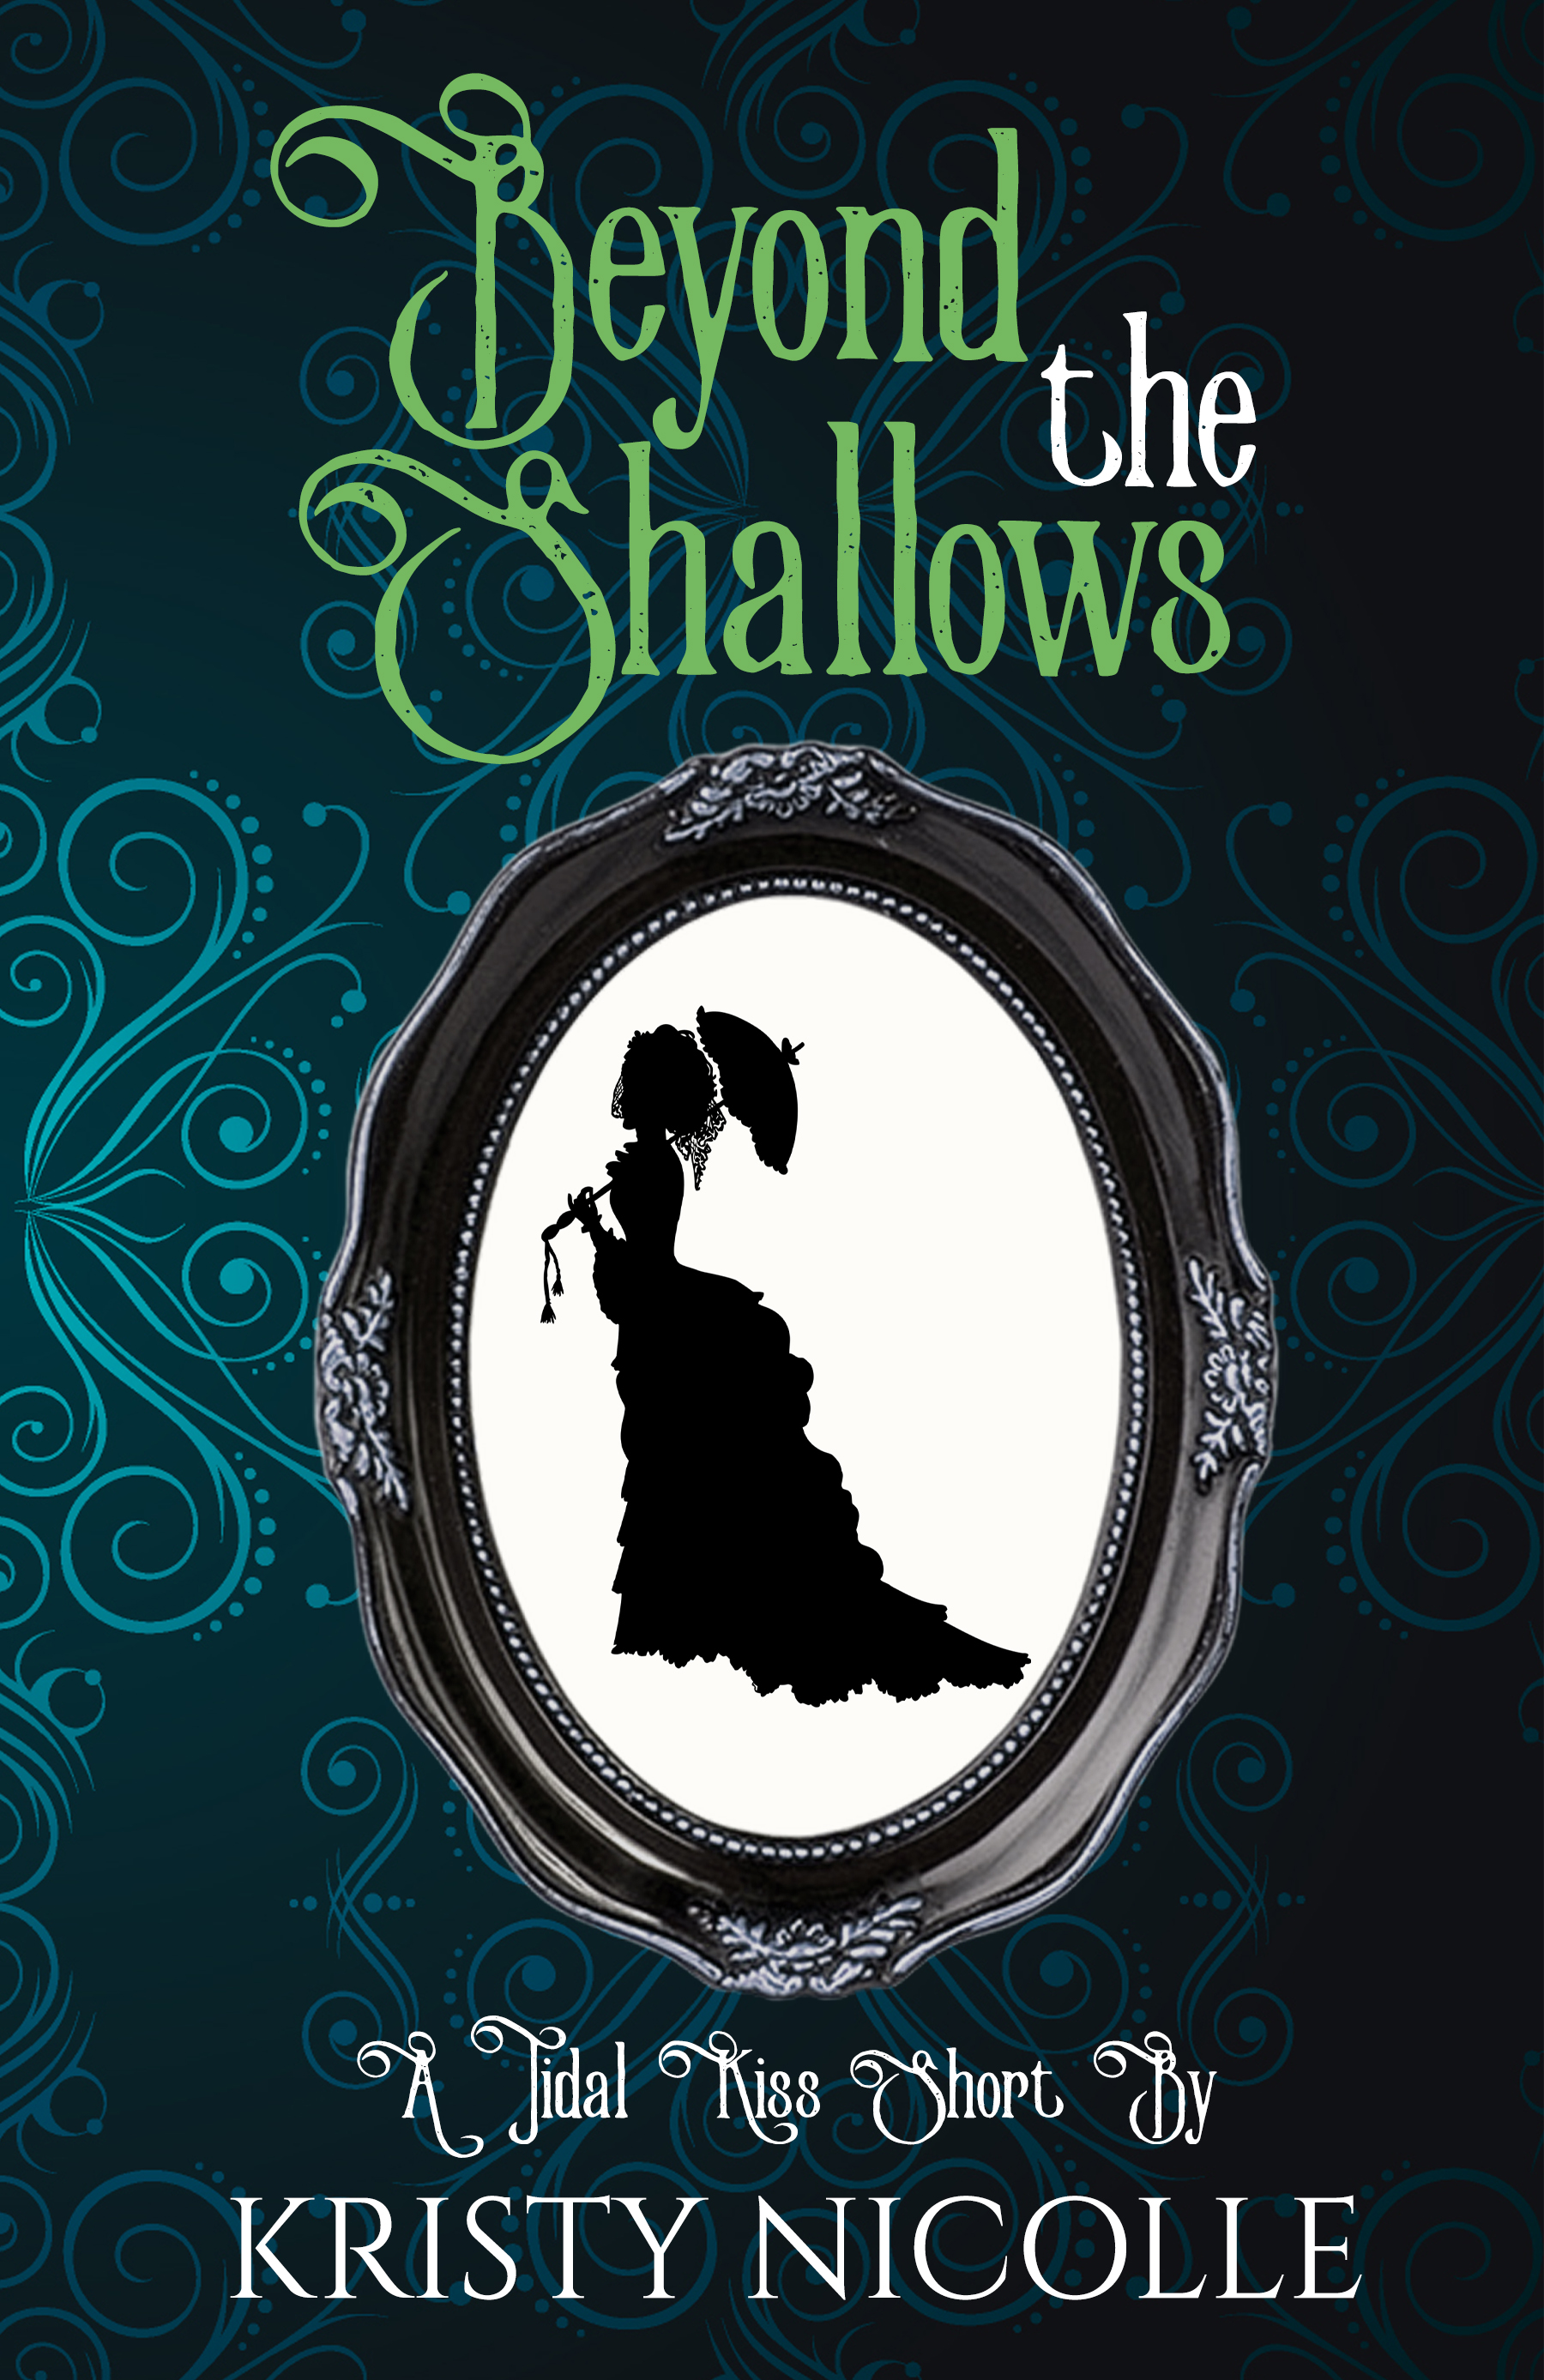 Beyond The Shallows- Free Fantasy Romance